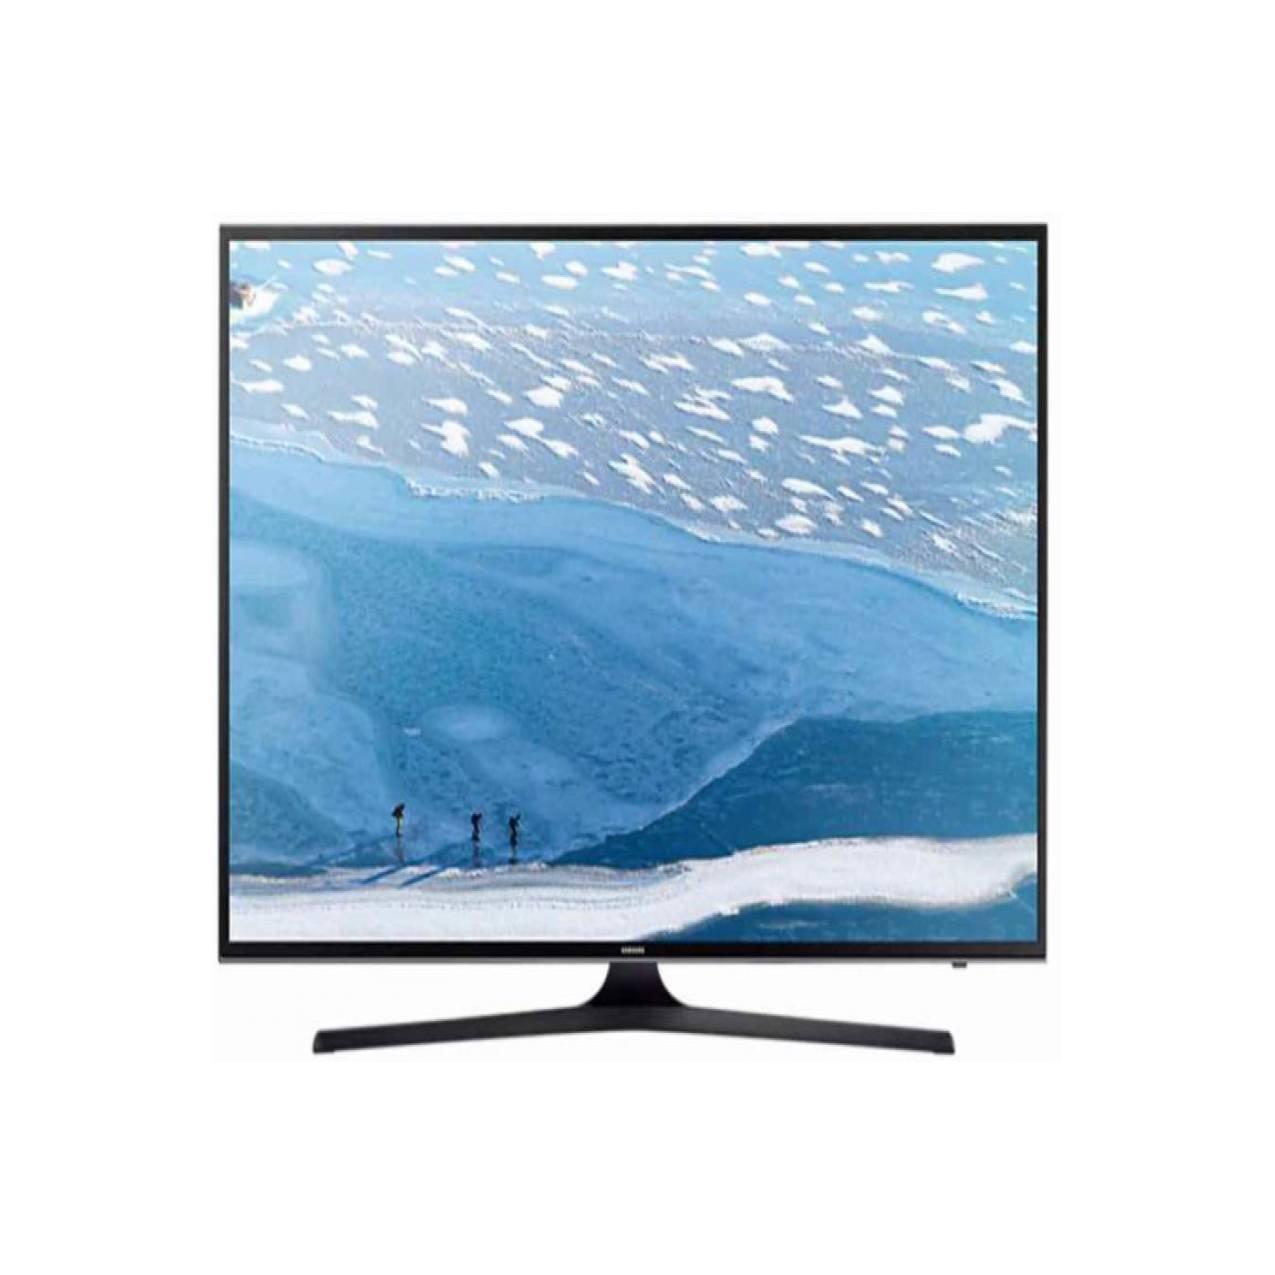 TV Samsung 40KU6000 UHD 4K Flat 40 Inch Smart TV